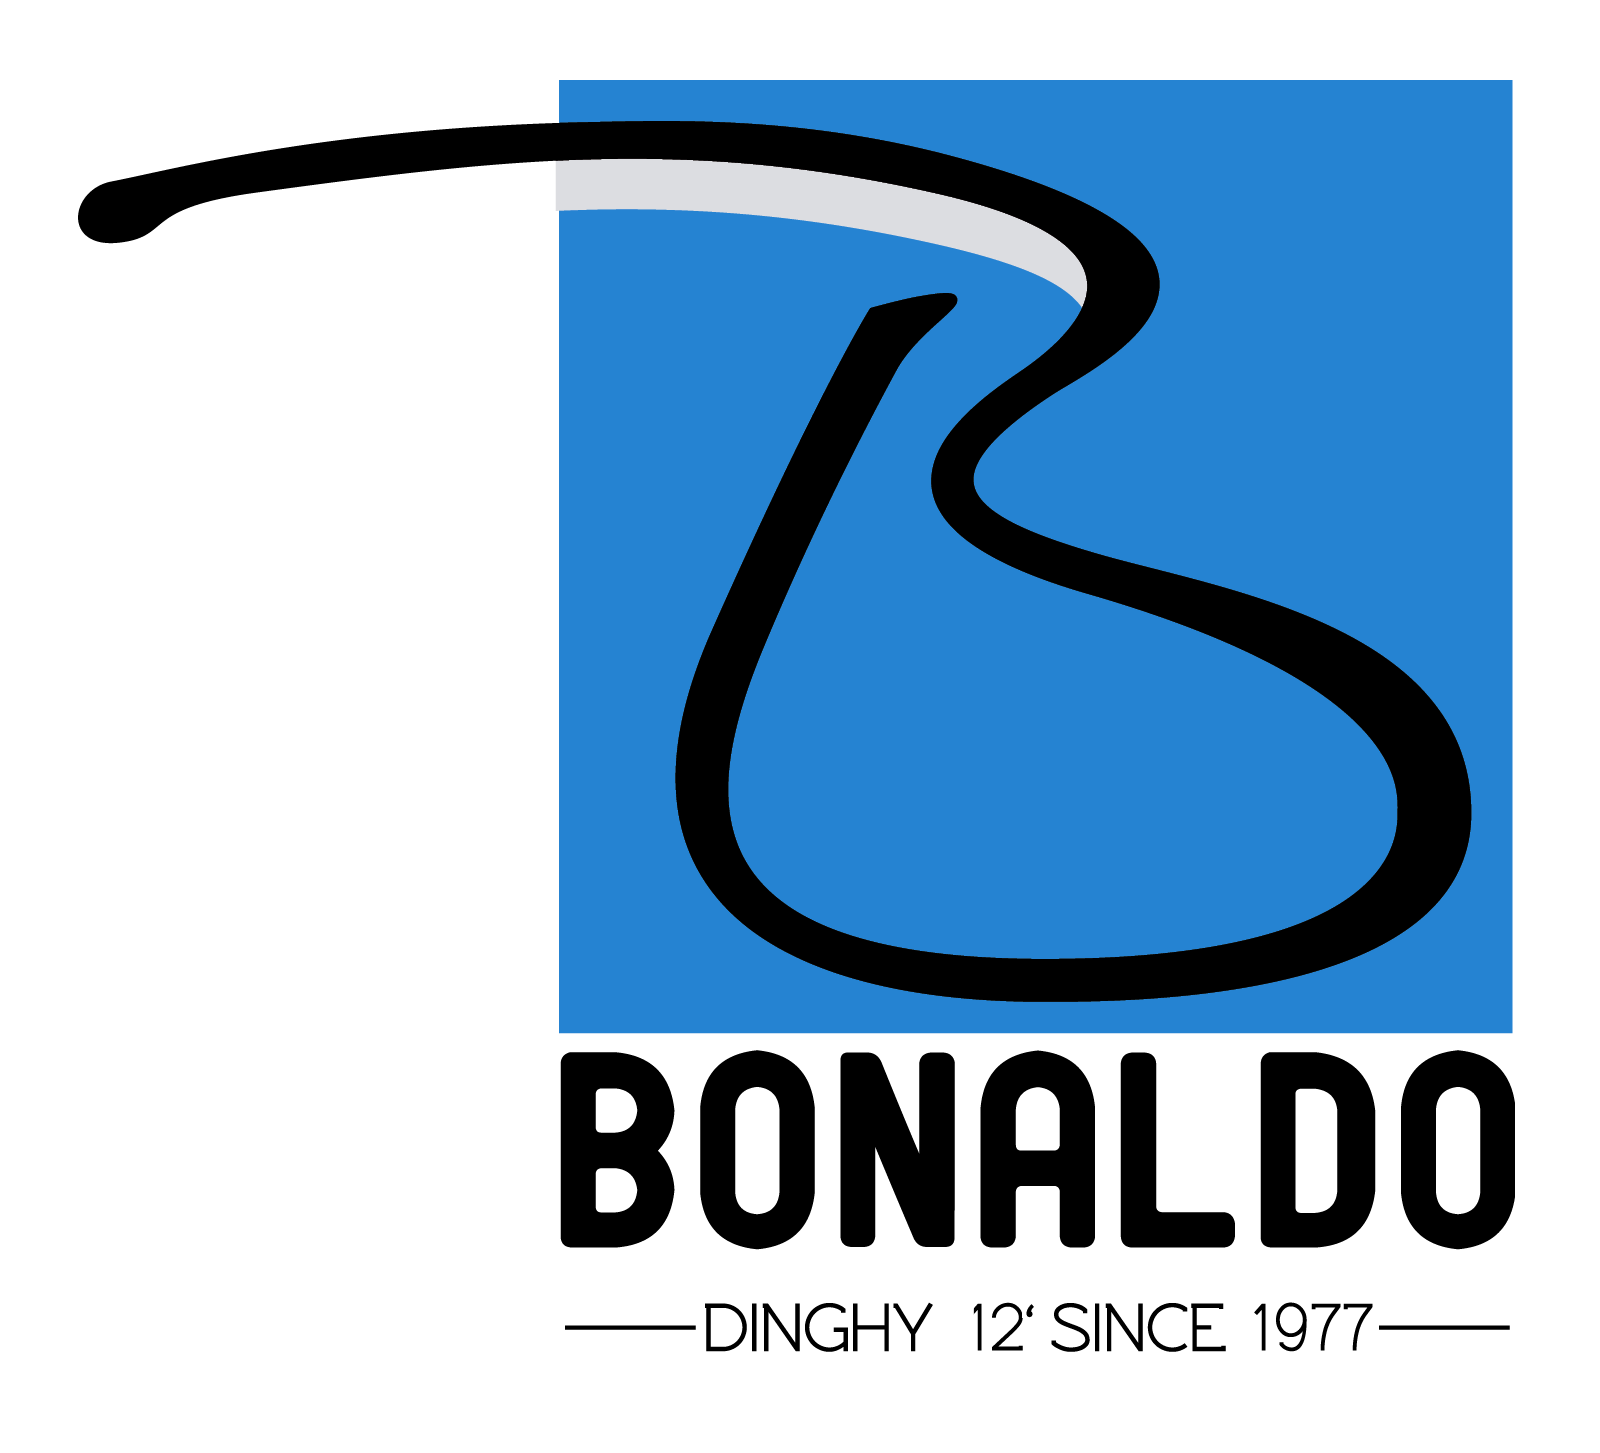 BONALDO DINGHY THE FIRST 12' SINCE 1977